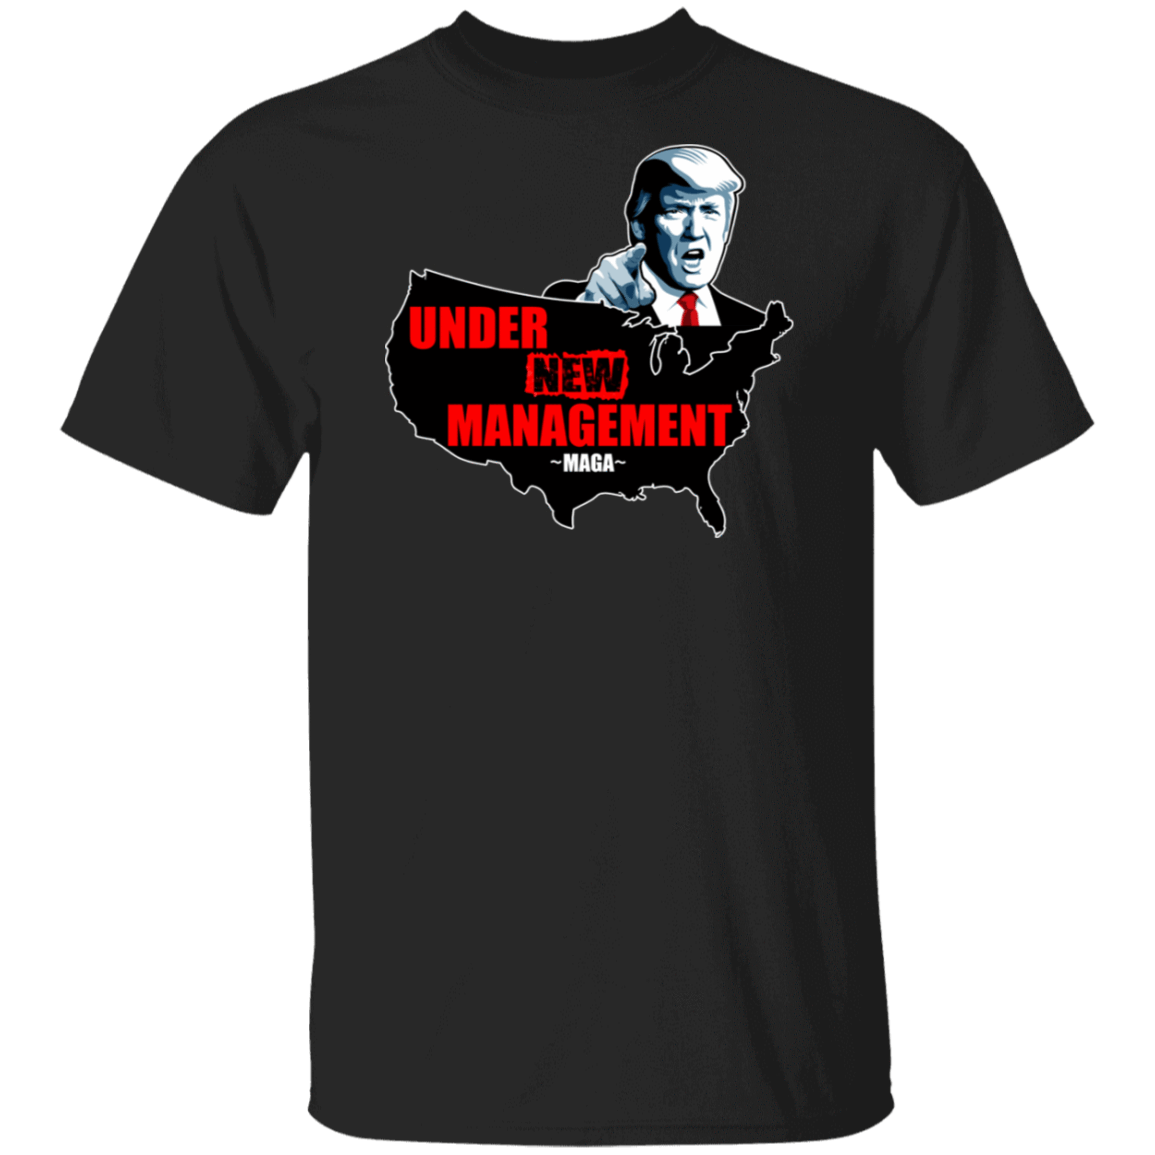 Under New Management #Maga T-Shirts, Hoodies, Tank 1049-9953-80393639-48144 - Tee Ript